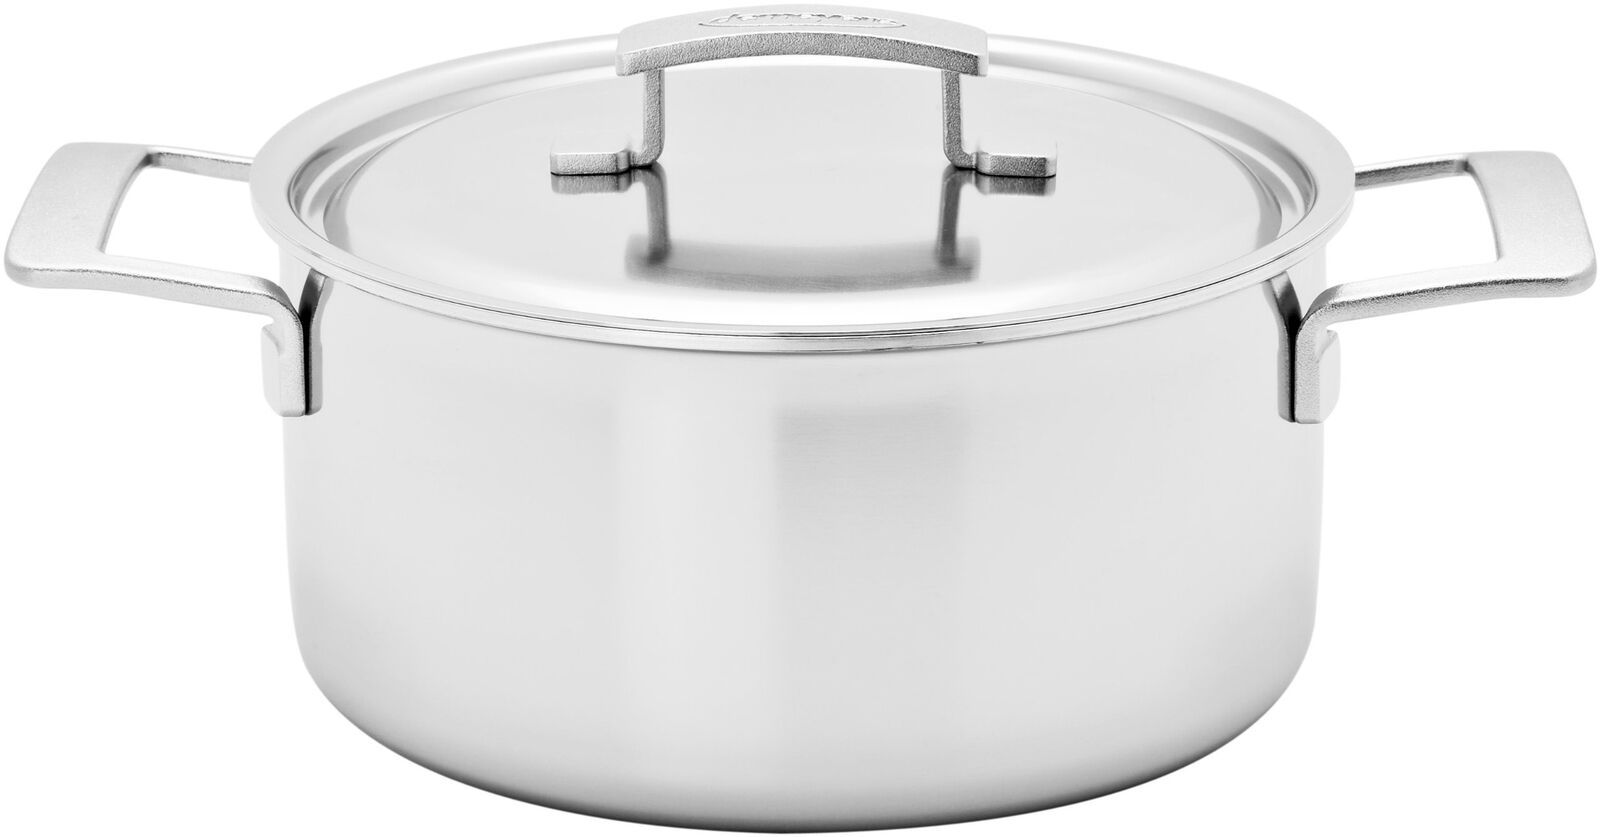 Demeyere Zwilling Sensation 66003-240-0 Stewing Pan 7.6 L Suitable for Induct...